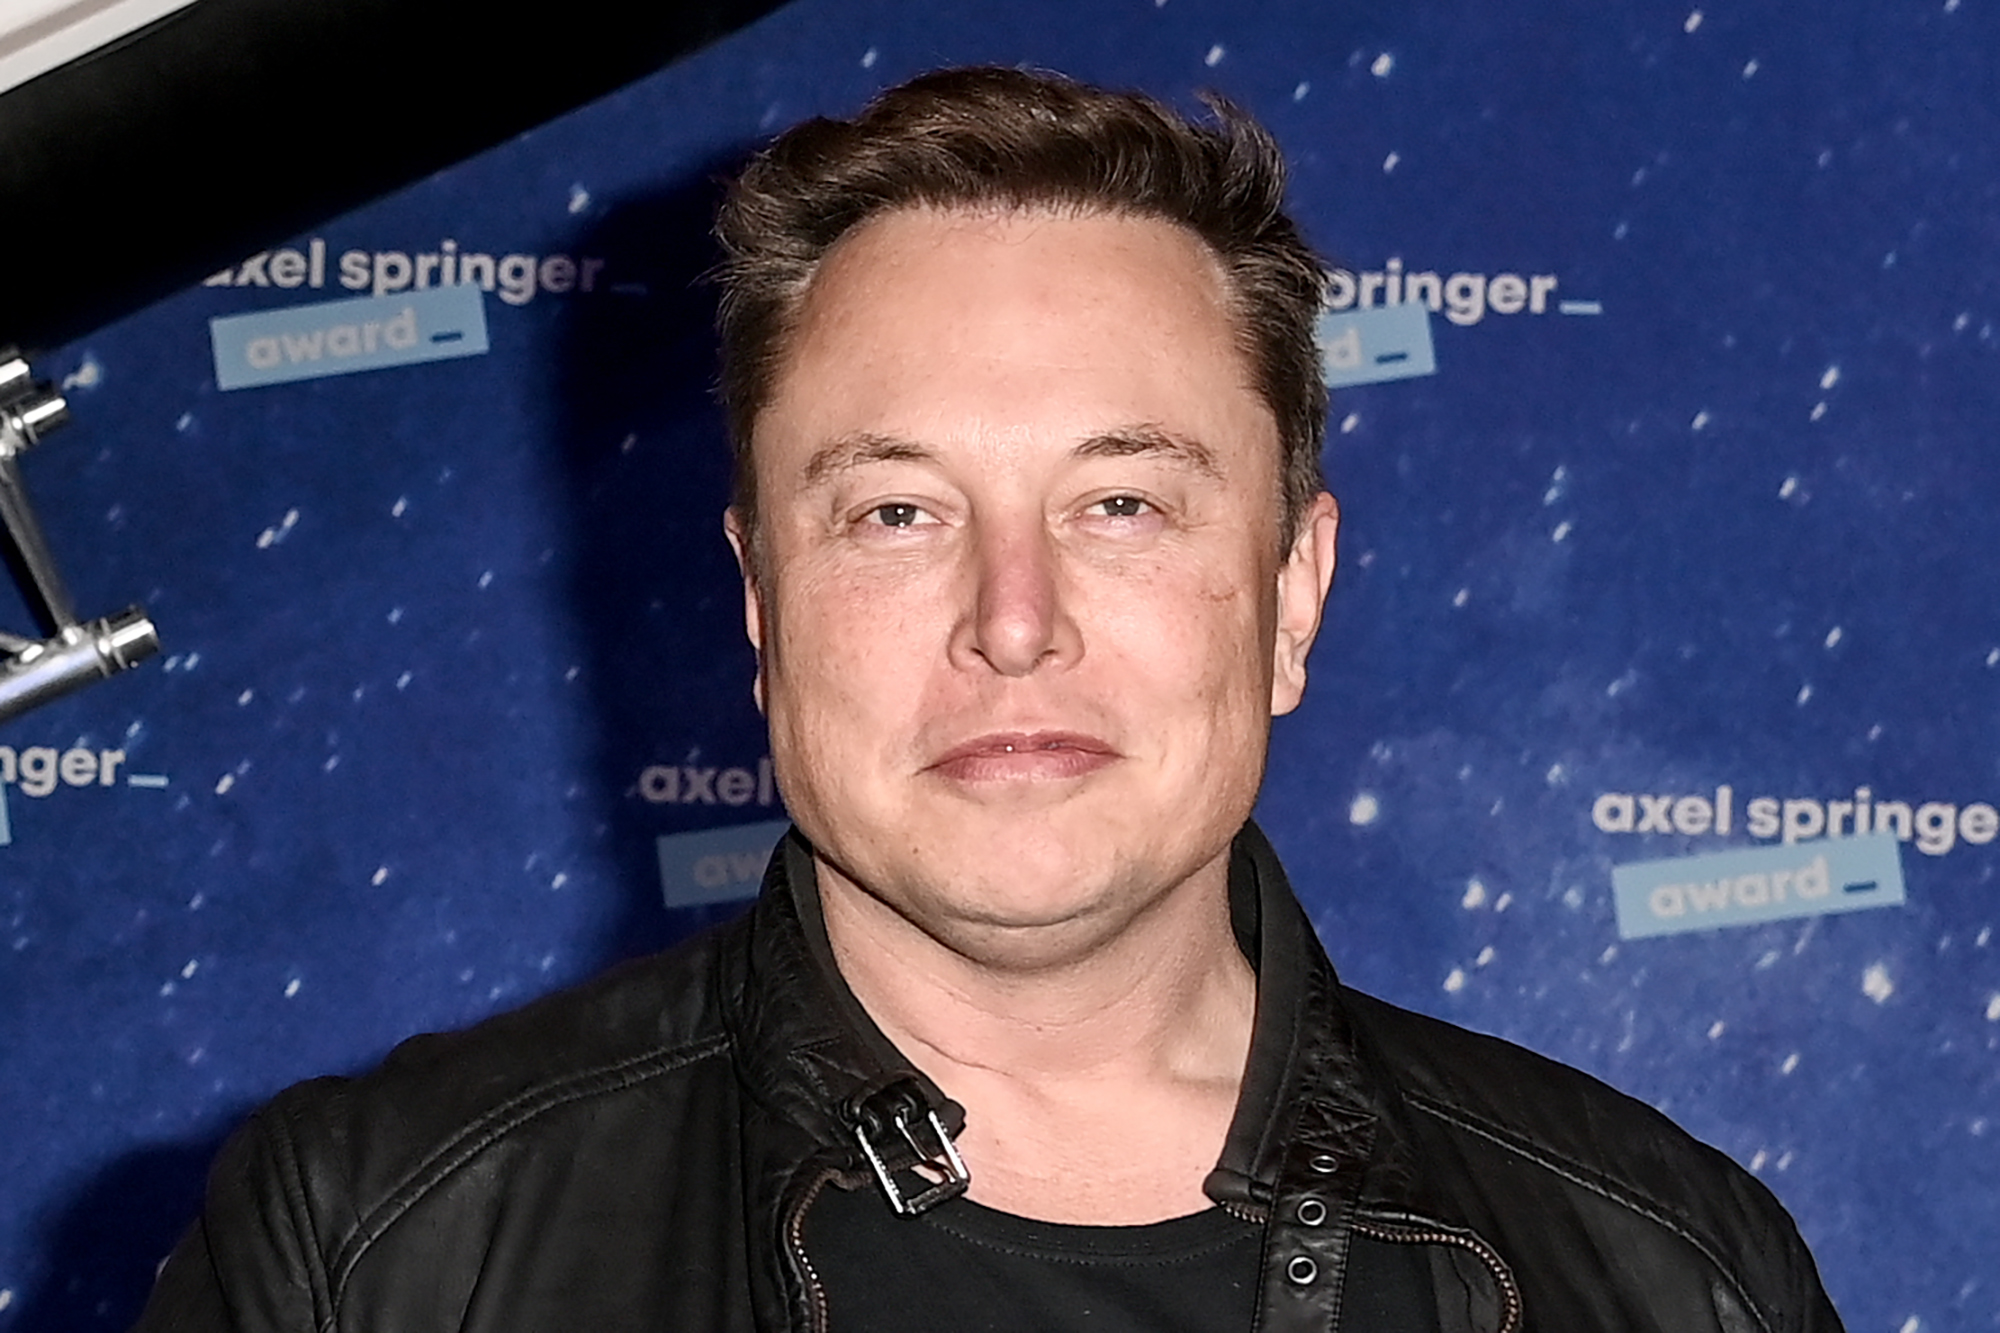 Human Rights Campaign calls for apology from Elon Musk